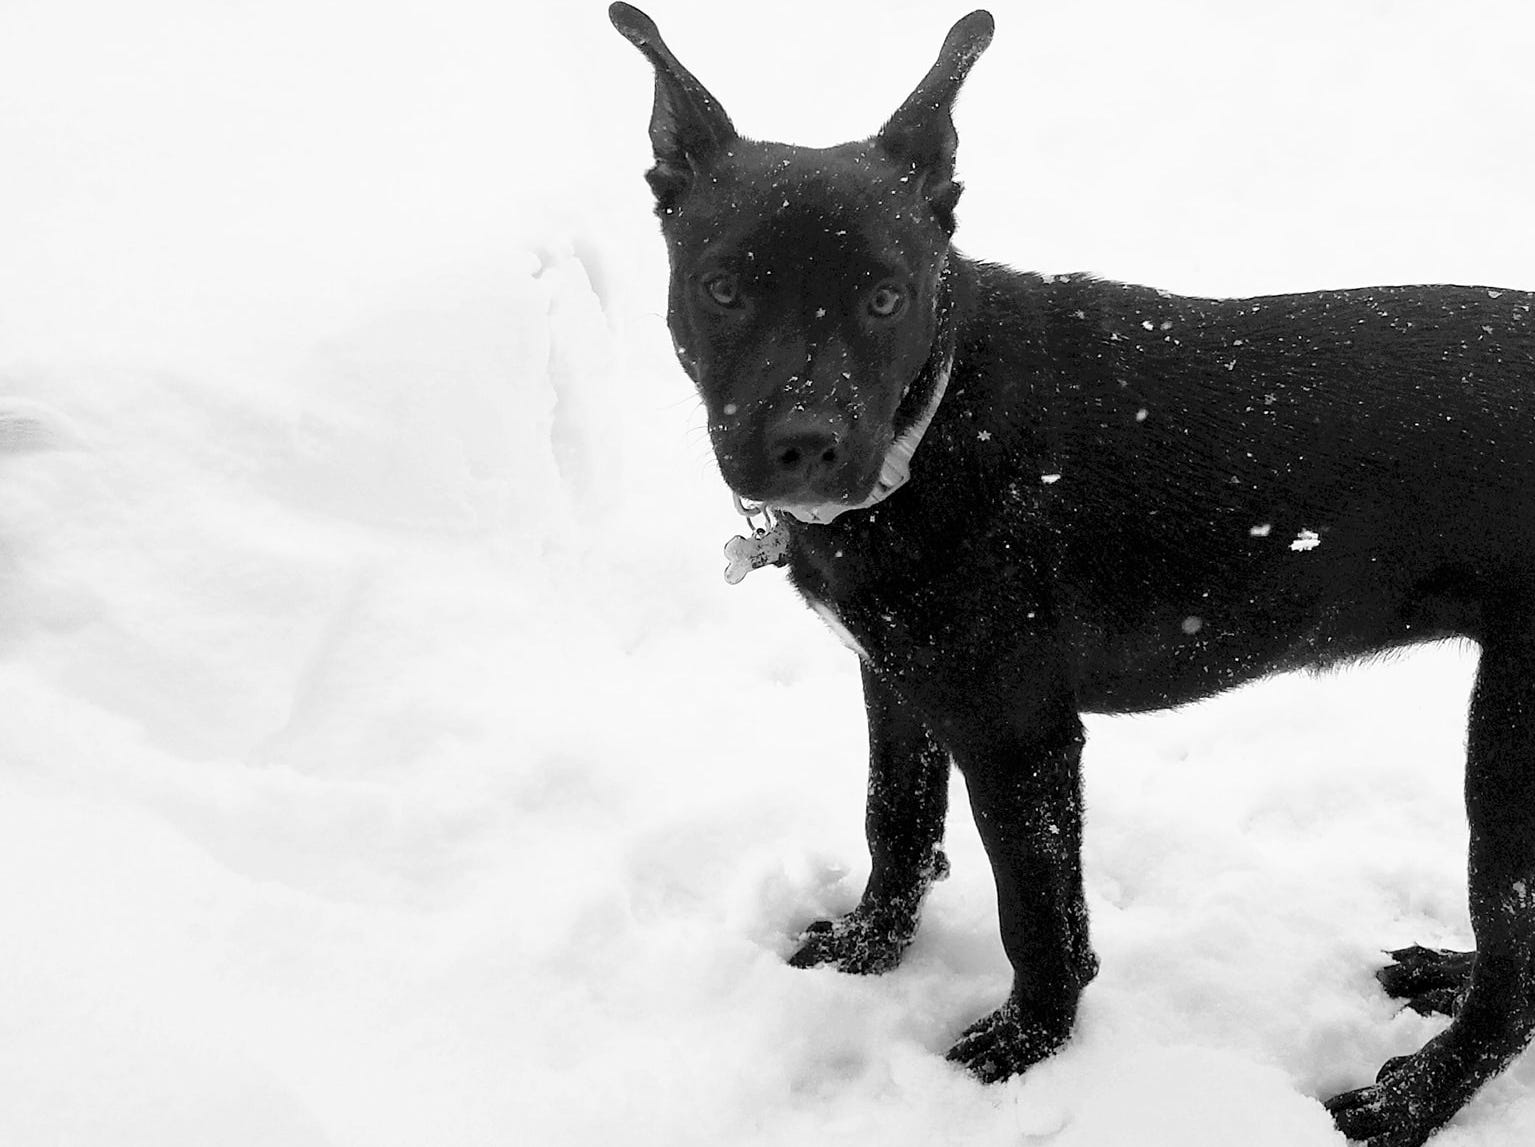 Tessa loved her first big snowstorm in Irondequoit. Photo by Kaitlin J. Joyce.